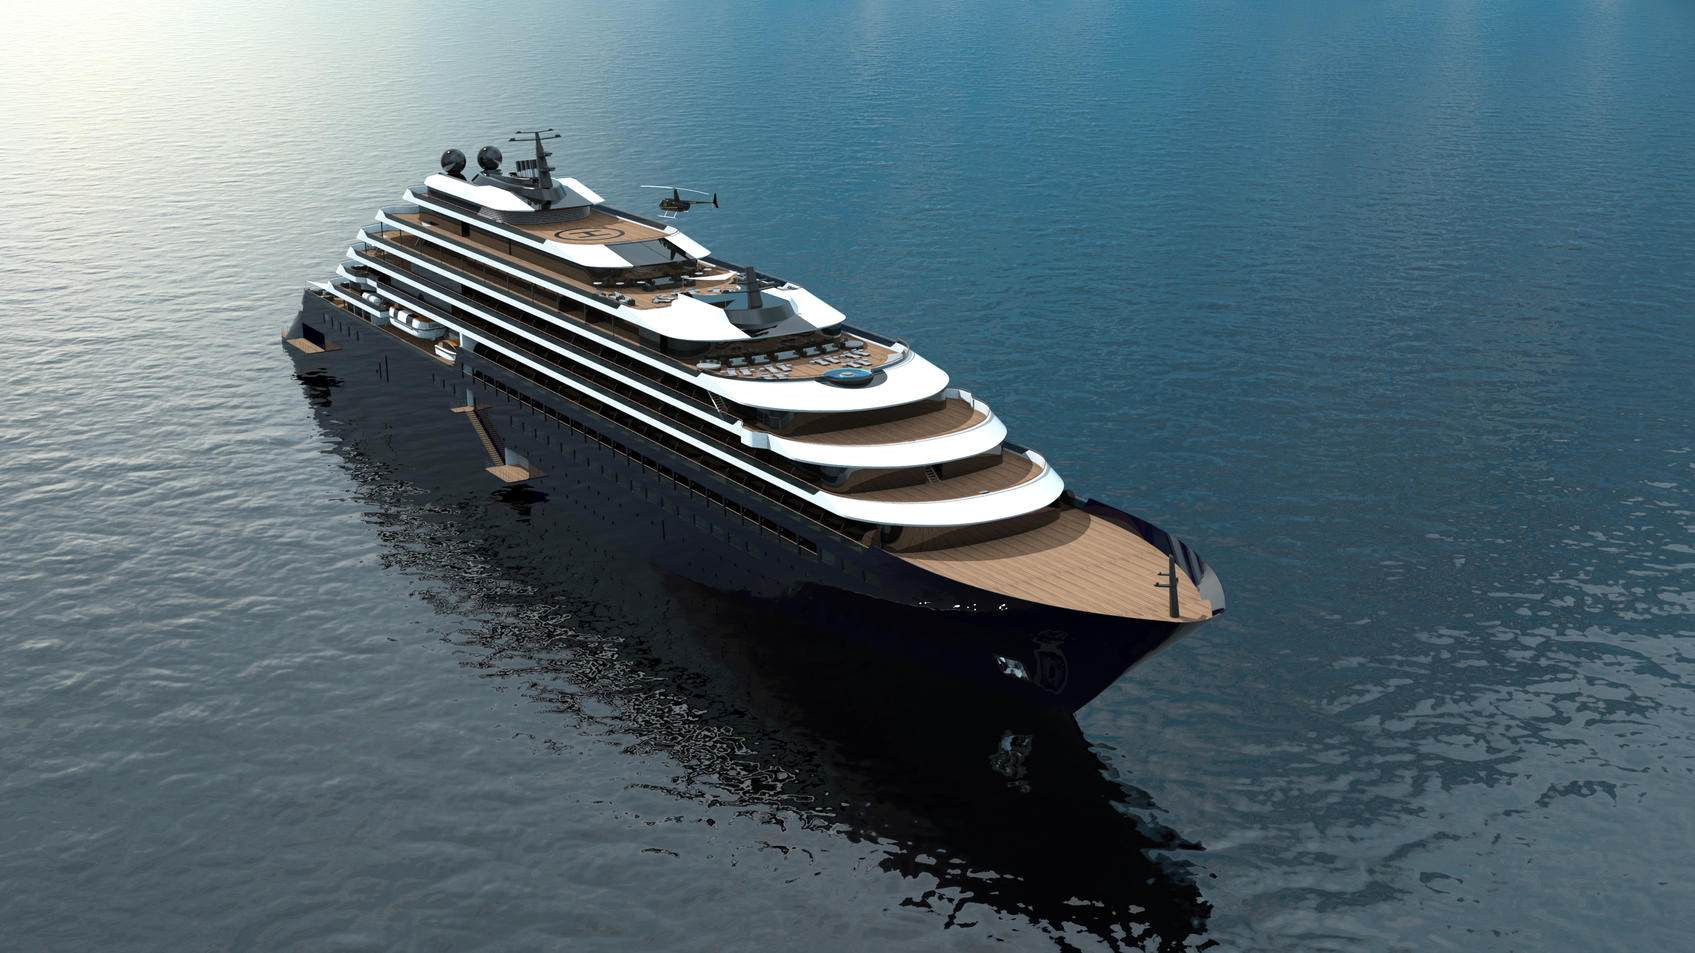 Ritz-Carlton sticht mit luxuriösen Yachten in See